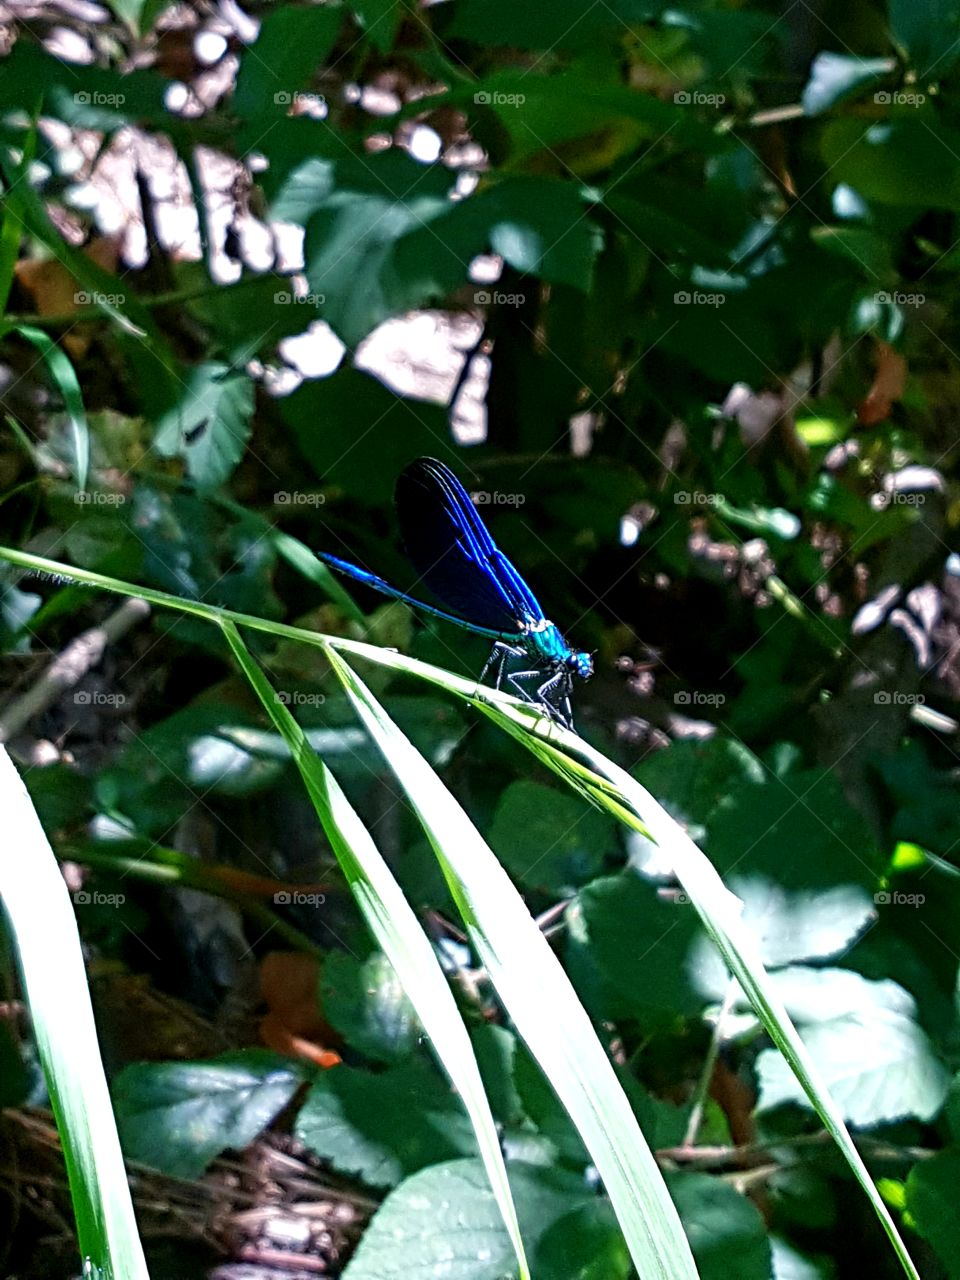 Blue dragonfly on a summer day.